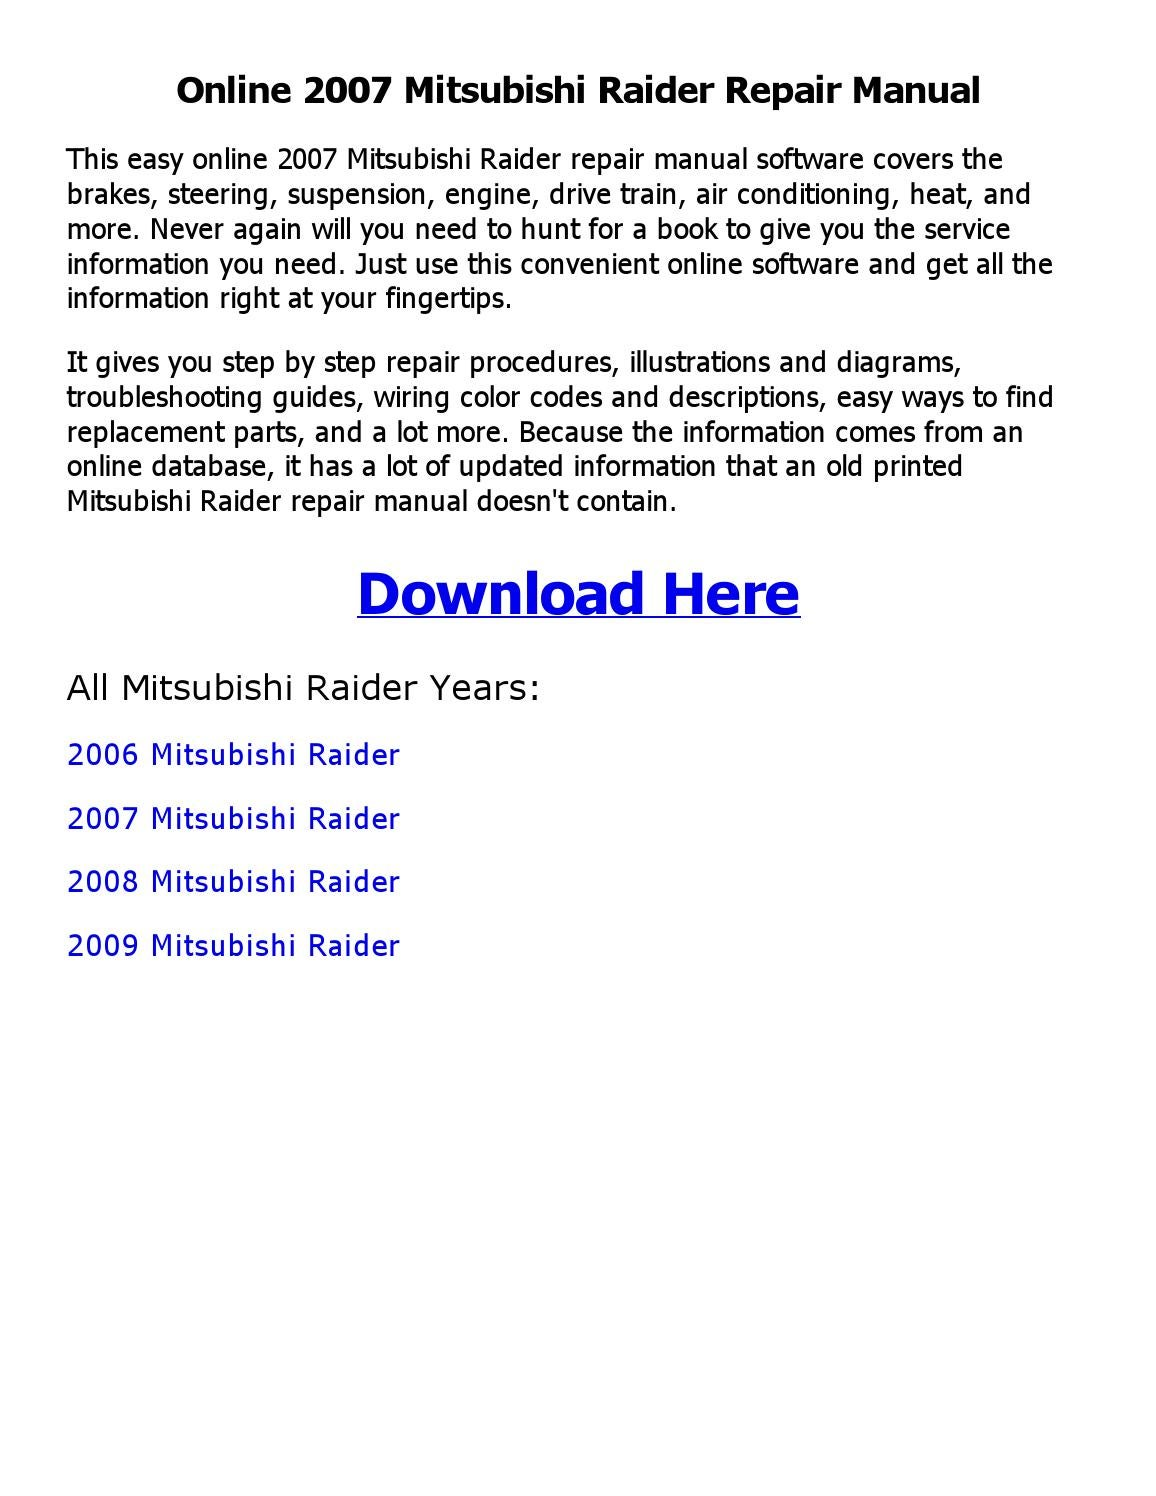 hight resolution of 2007 mitsubishi raider repair manual online by emran ahmed issuu